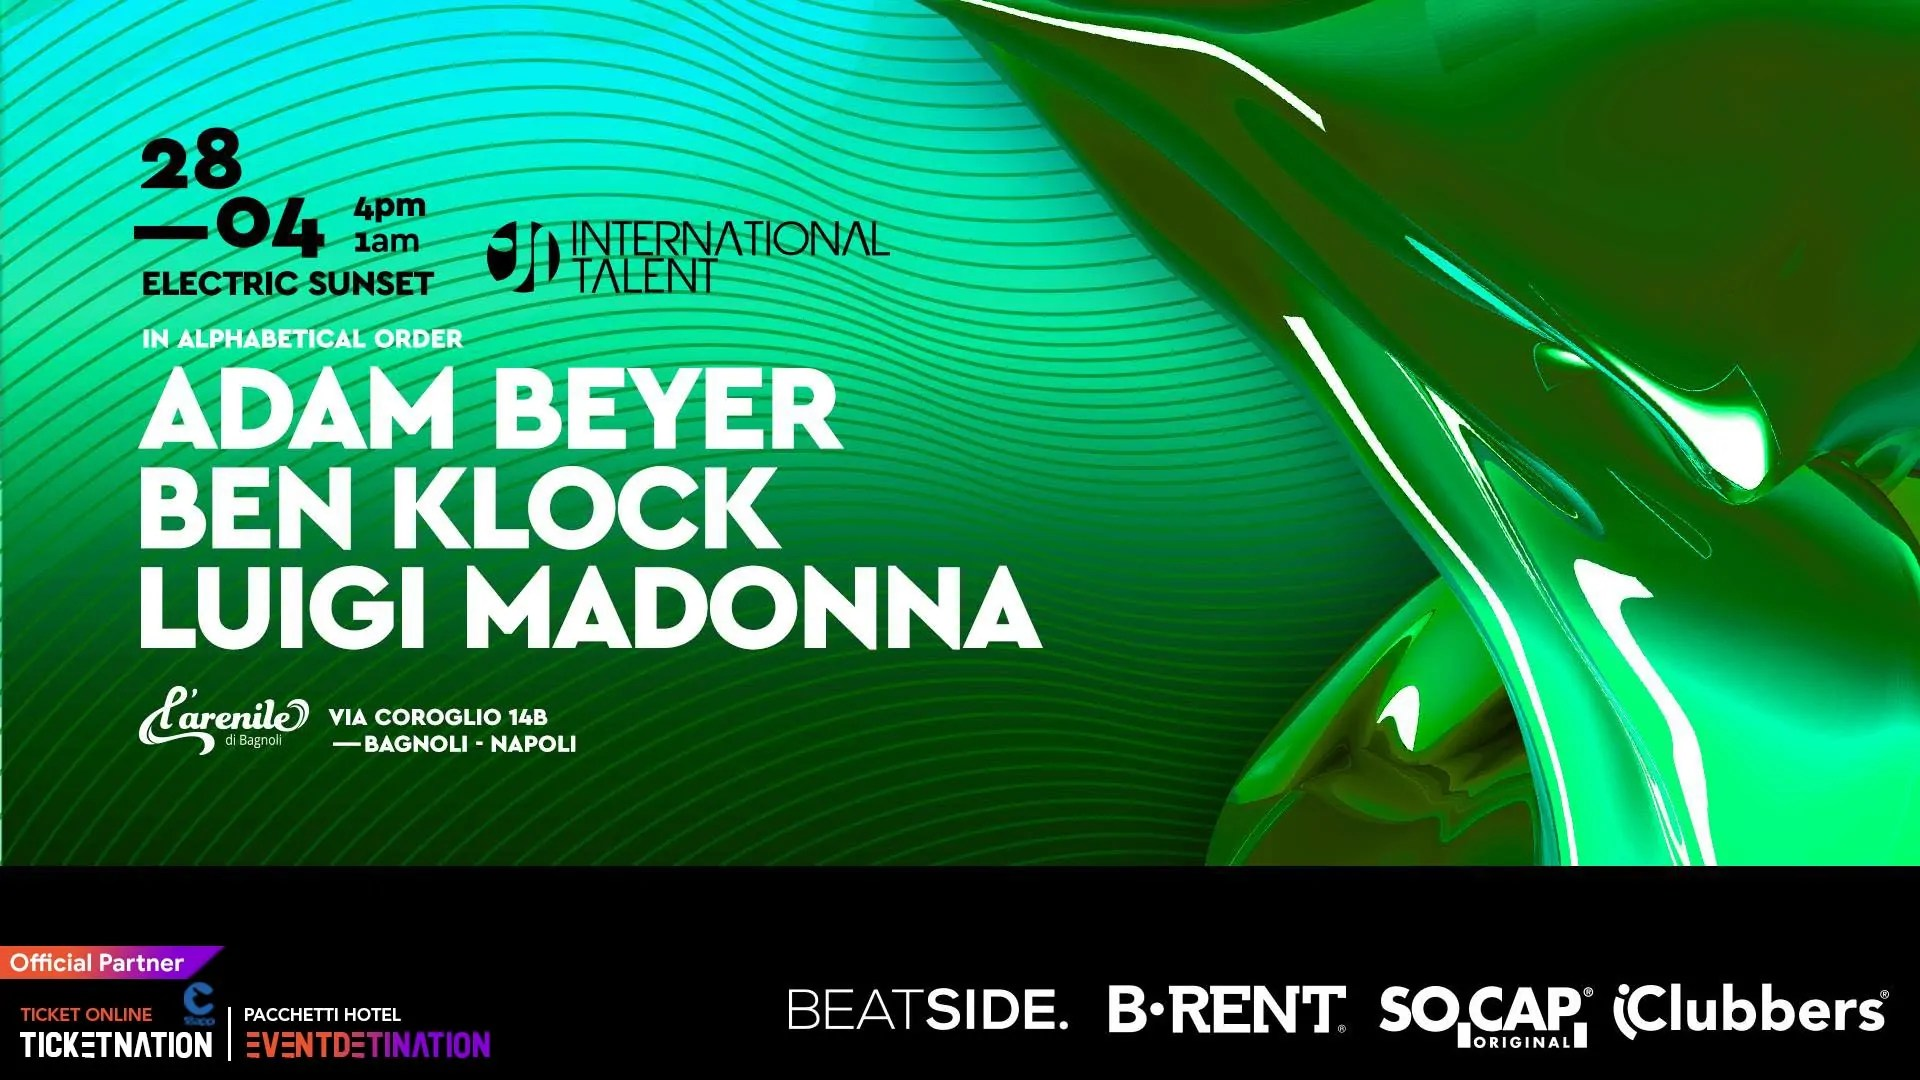 International Talent 28 Aprile 2019 Adam Beyer Ben Klock